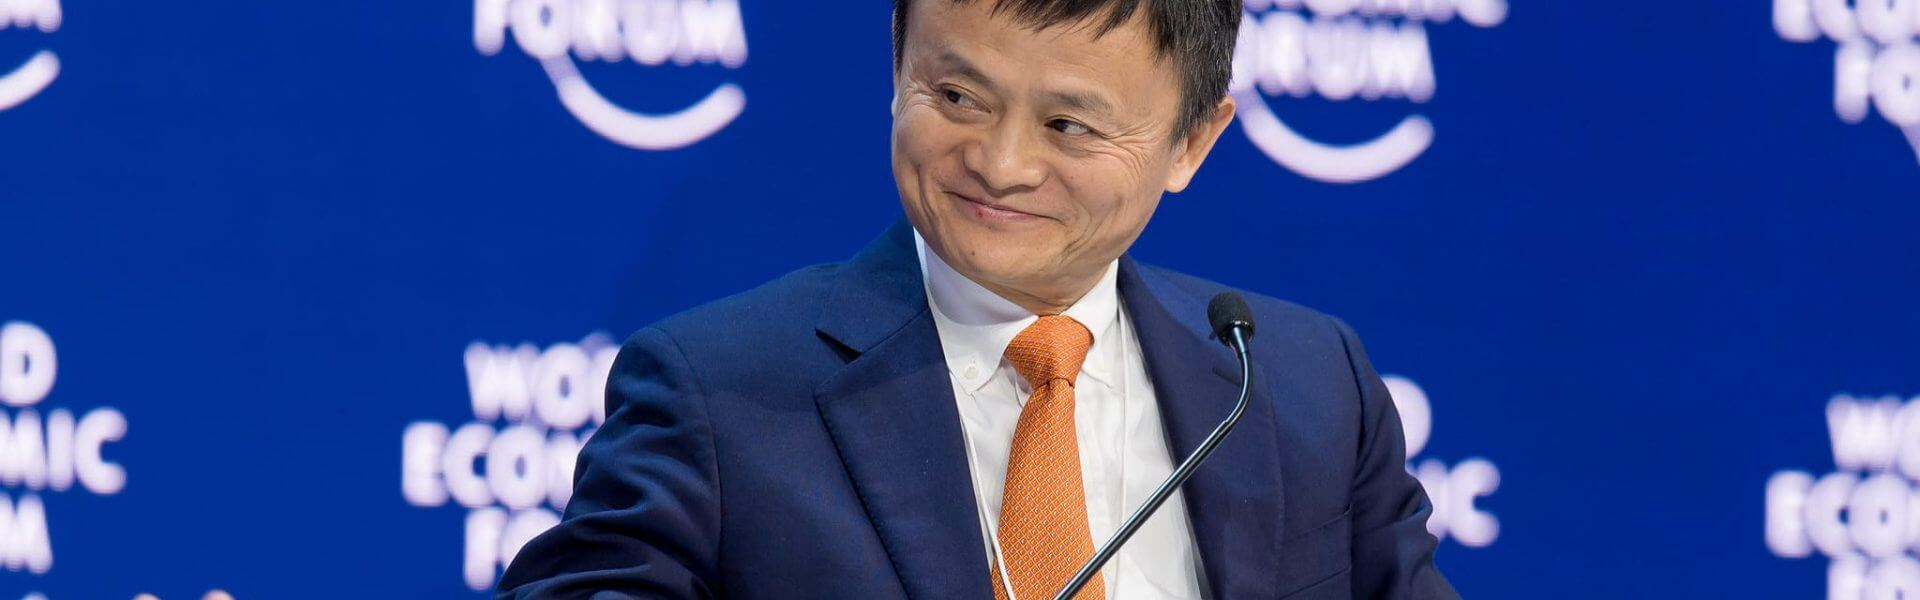 Jack Ma, YGL, Executive Chairman, Alibaba Group Holding, People's Republic of China; Member of the Board of Trustees, World Economic Forum speaking during the Session